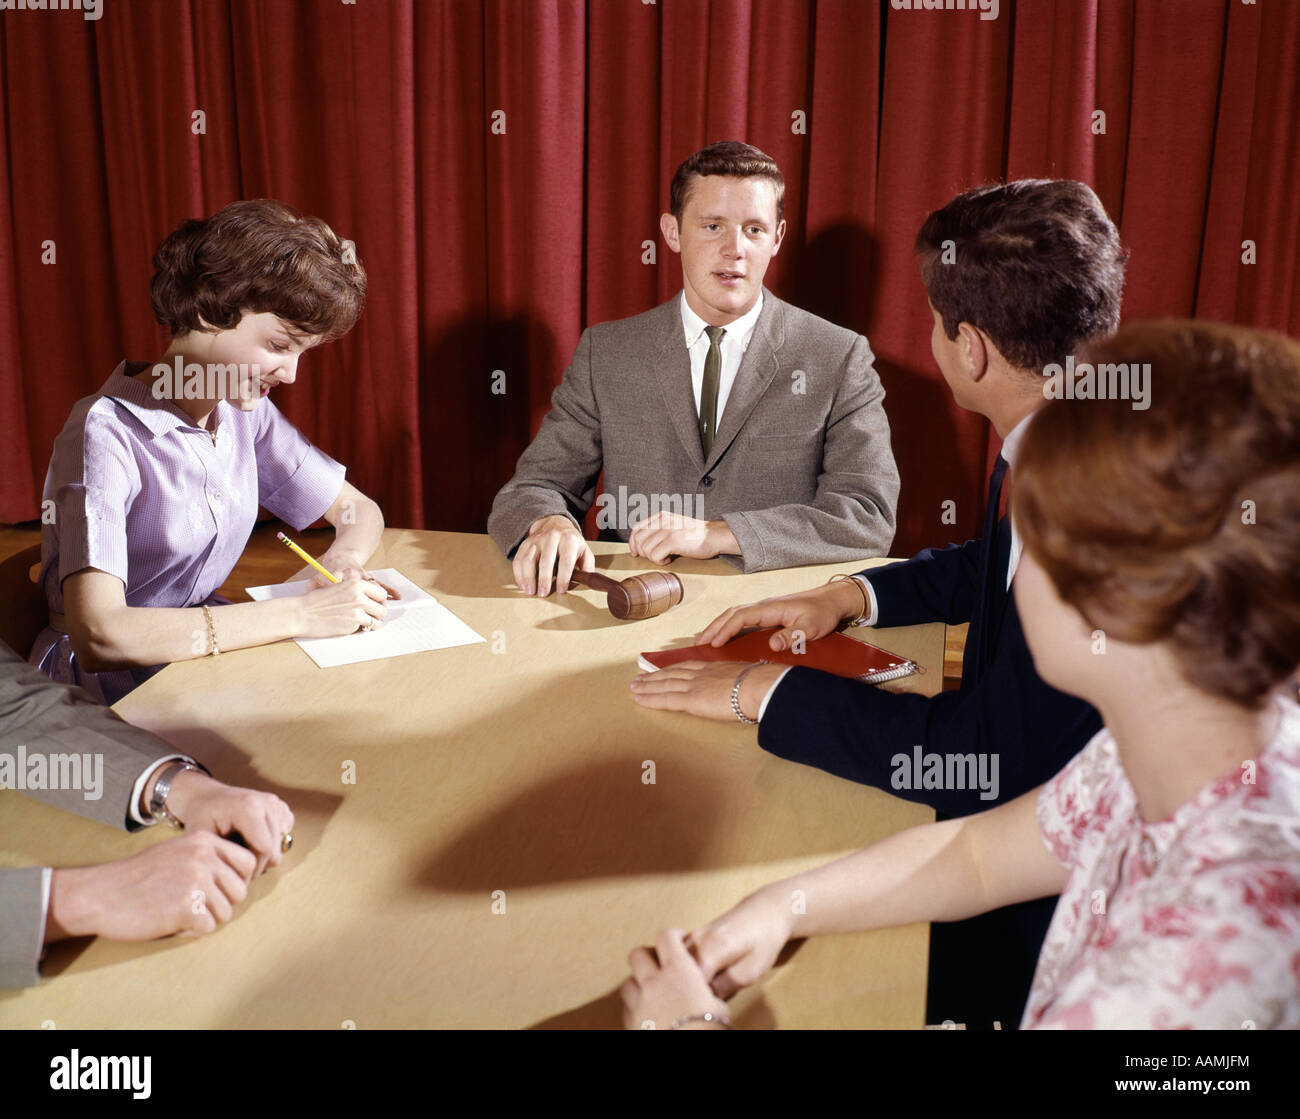 COLLEGE STUDENTS MEETING COUNCIL 1960 1960s RETRO - Stock Image